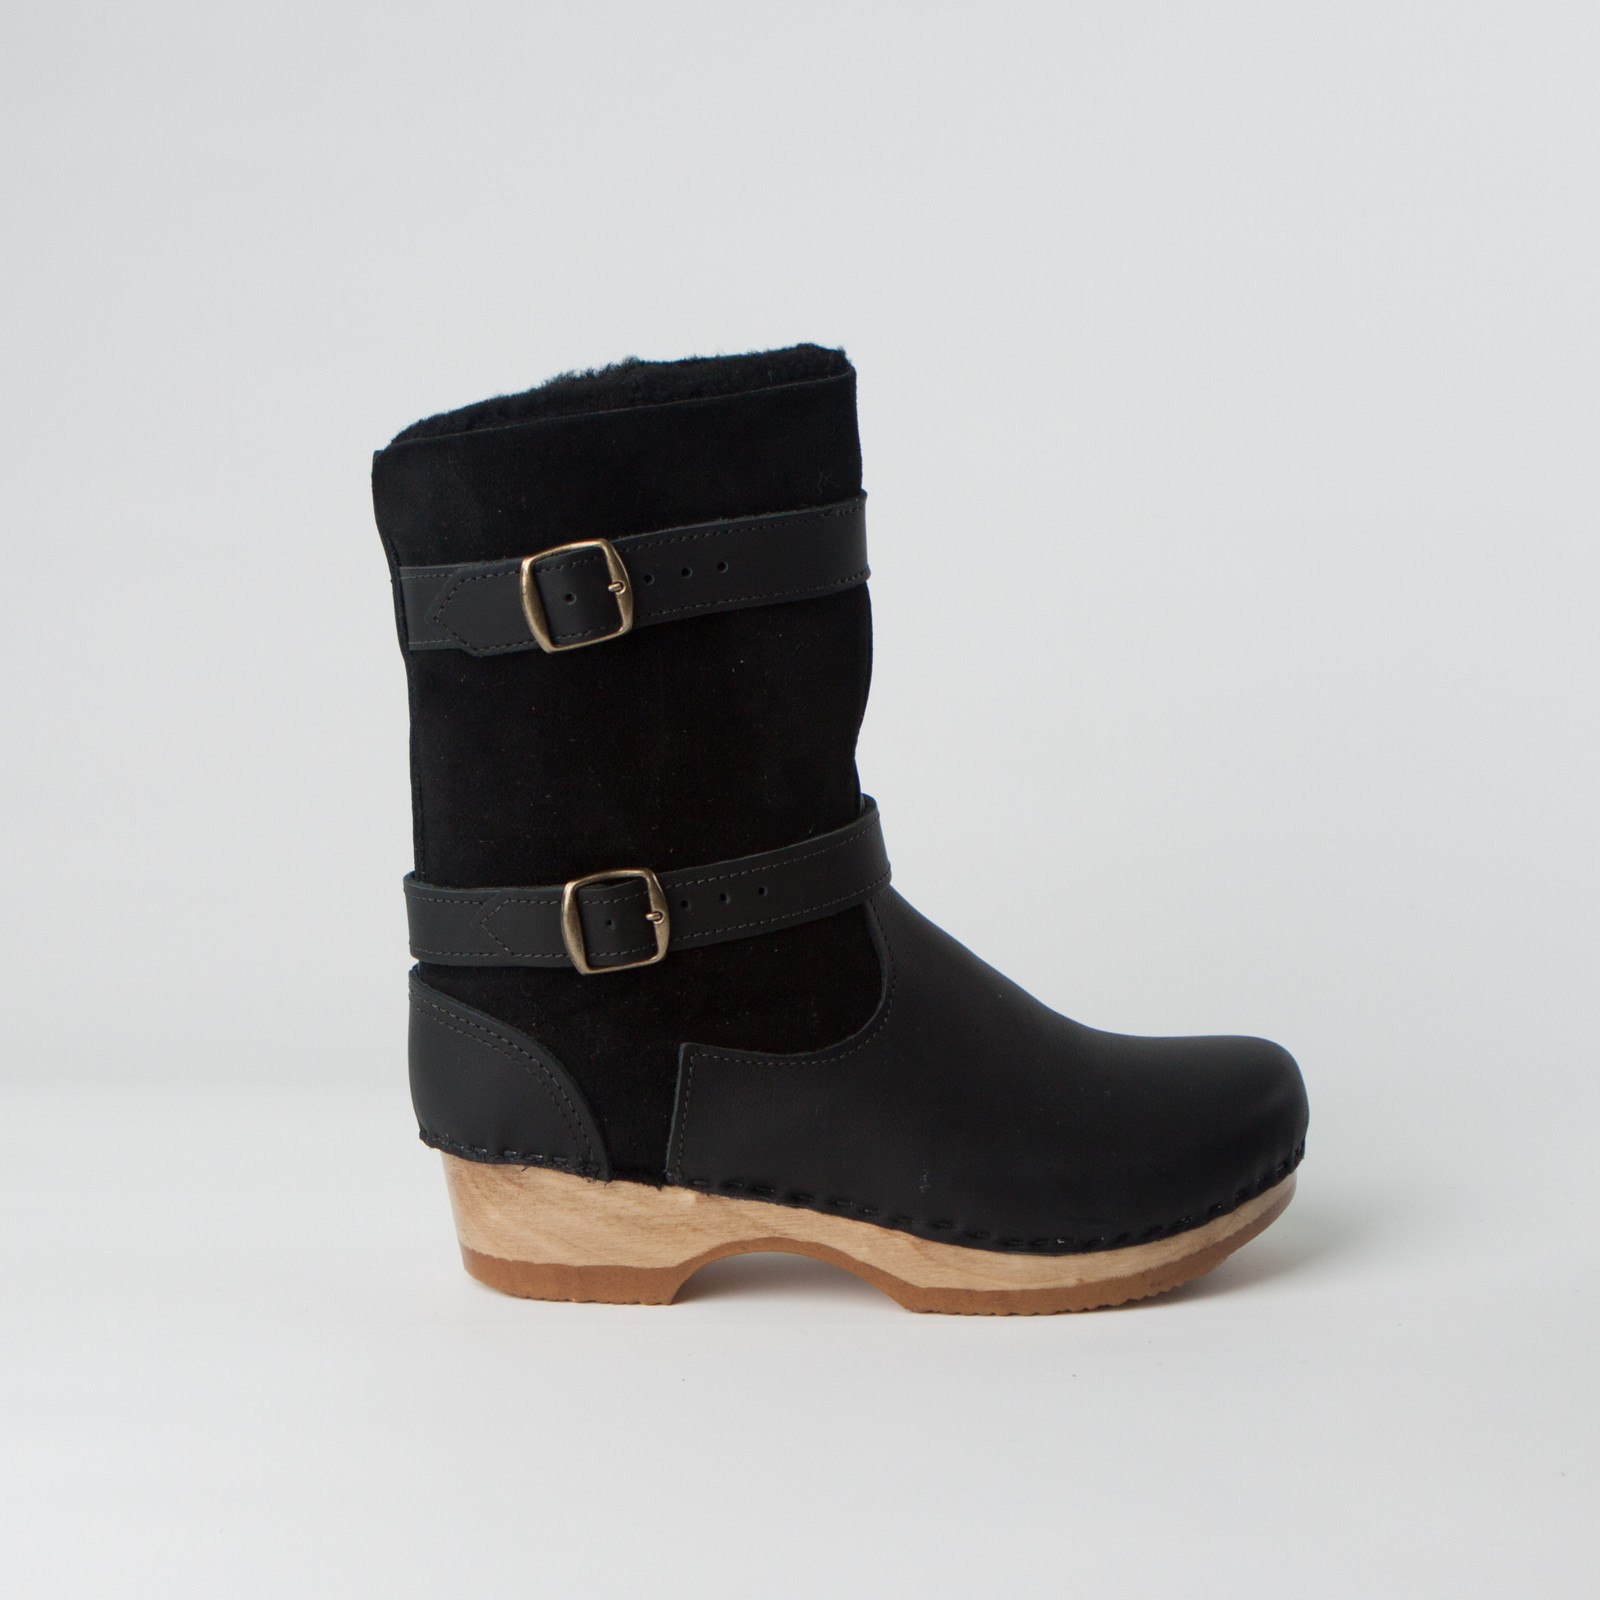 """8"""" Shearling Clog Boots - Double Straps - Low"""